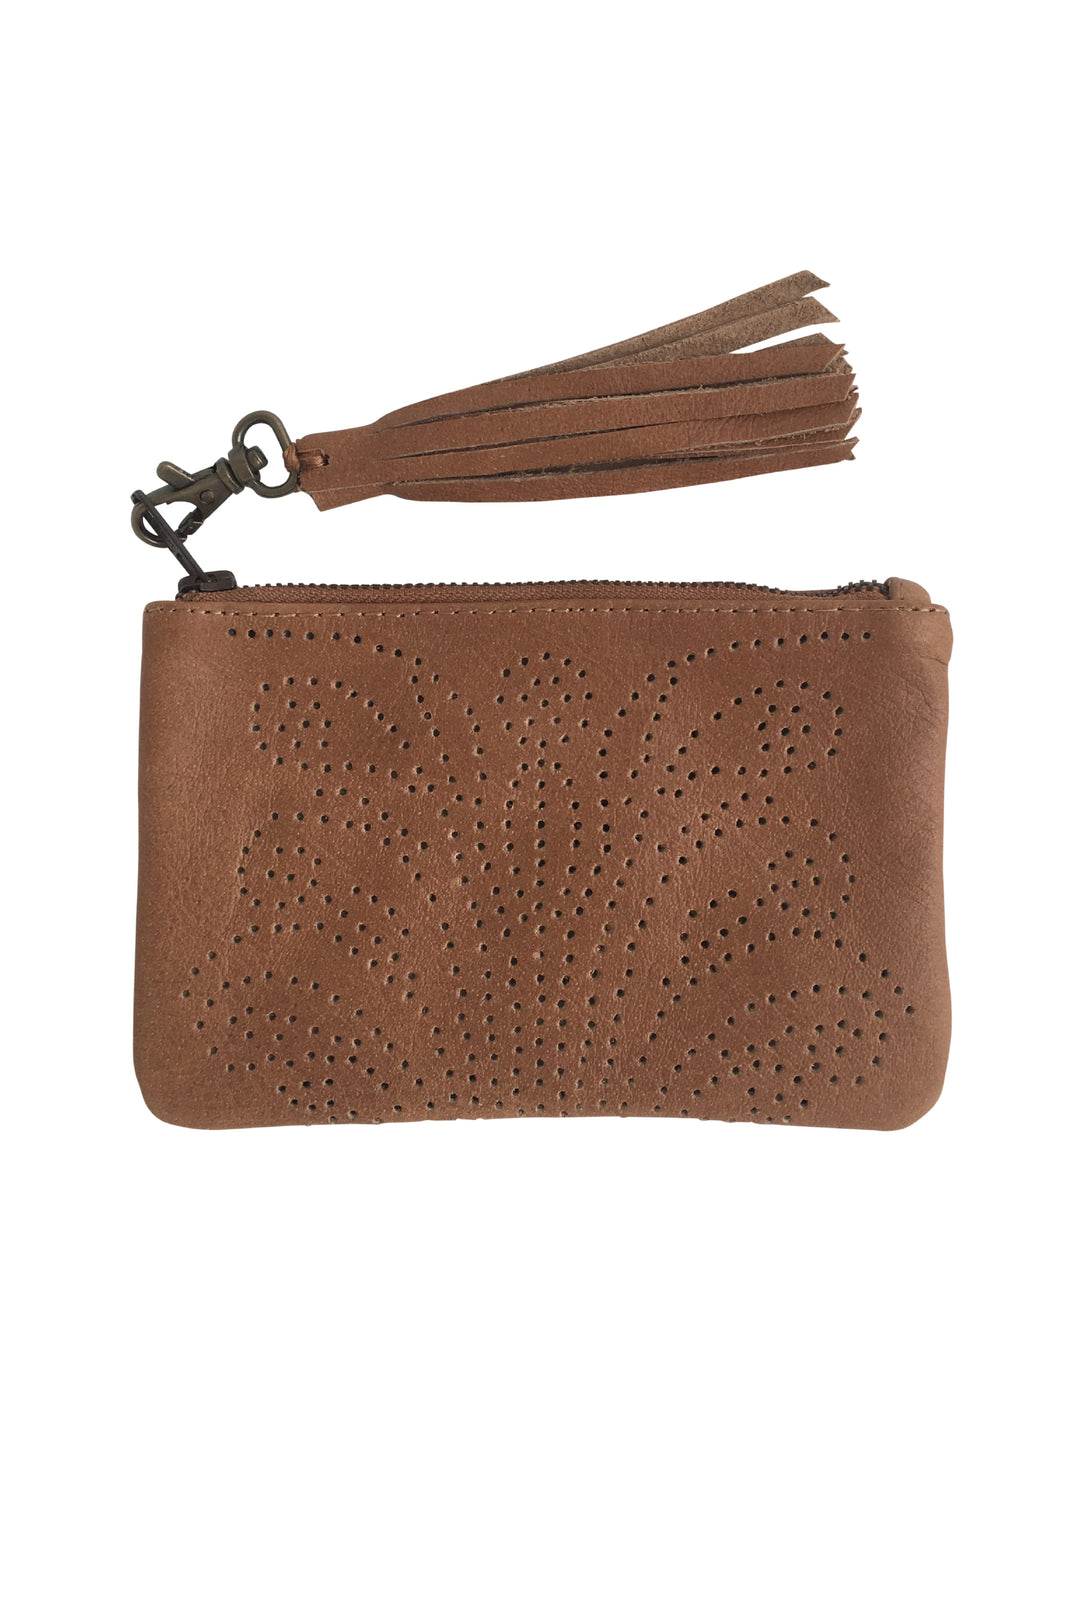 Sumitra tooled satchel desert stone